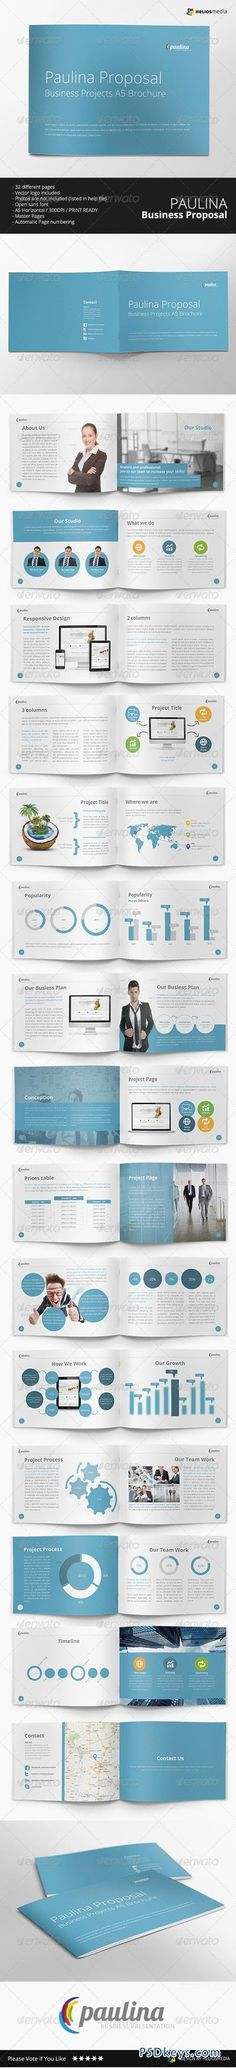 Simple 4 Pages Proposal For Web Developers Proposals   Business Proposal  Software Free Download  Business Proposal Software Free Download